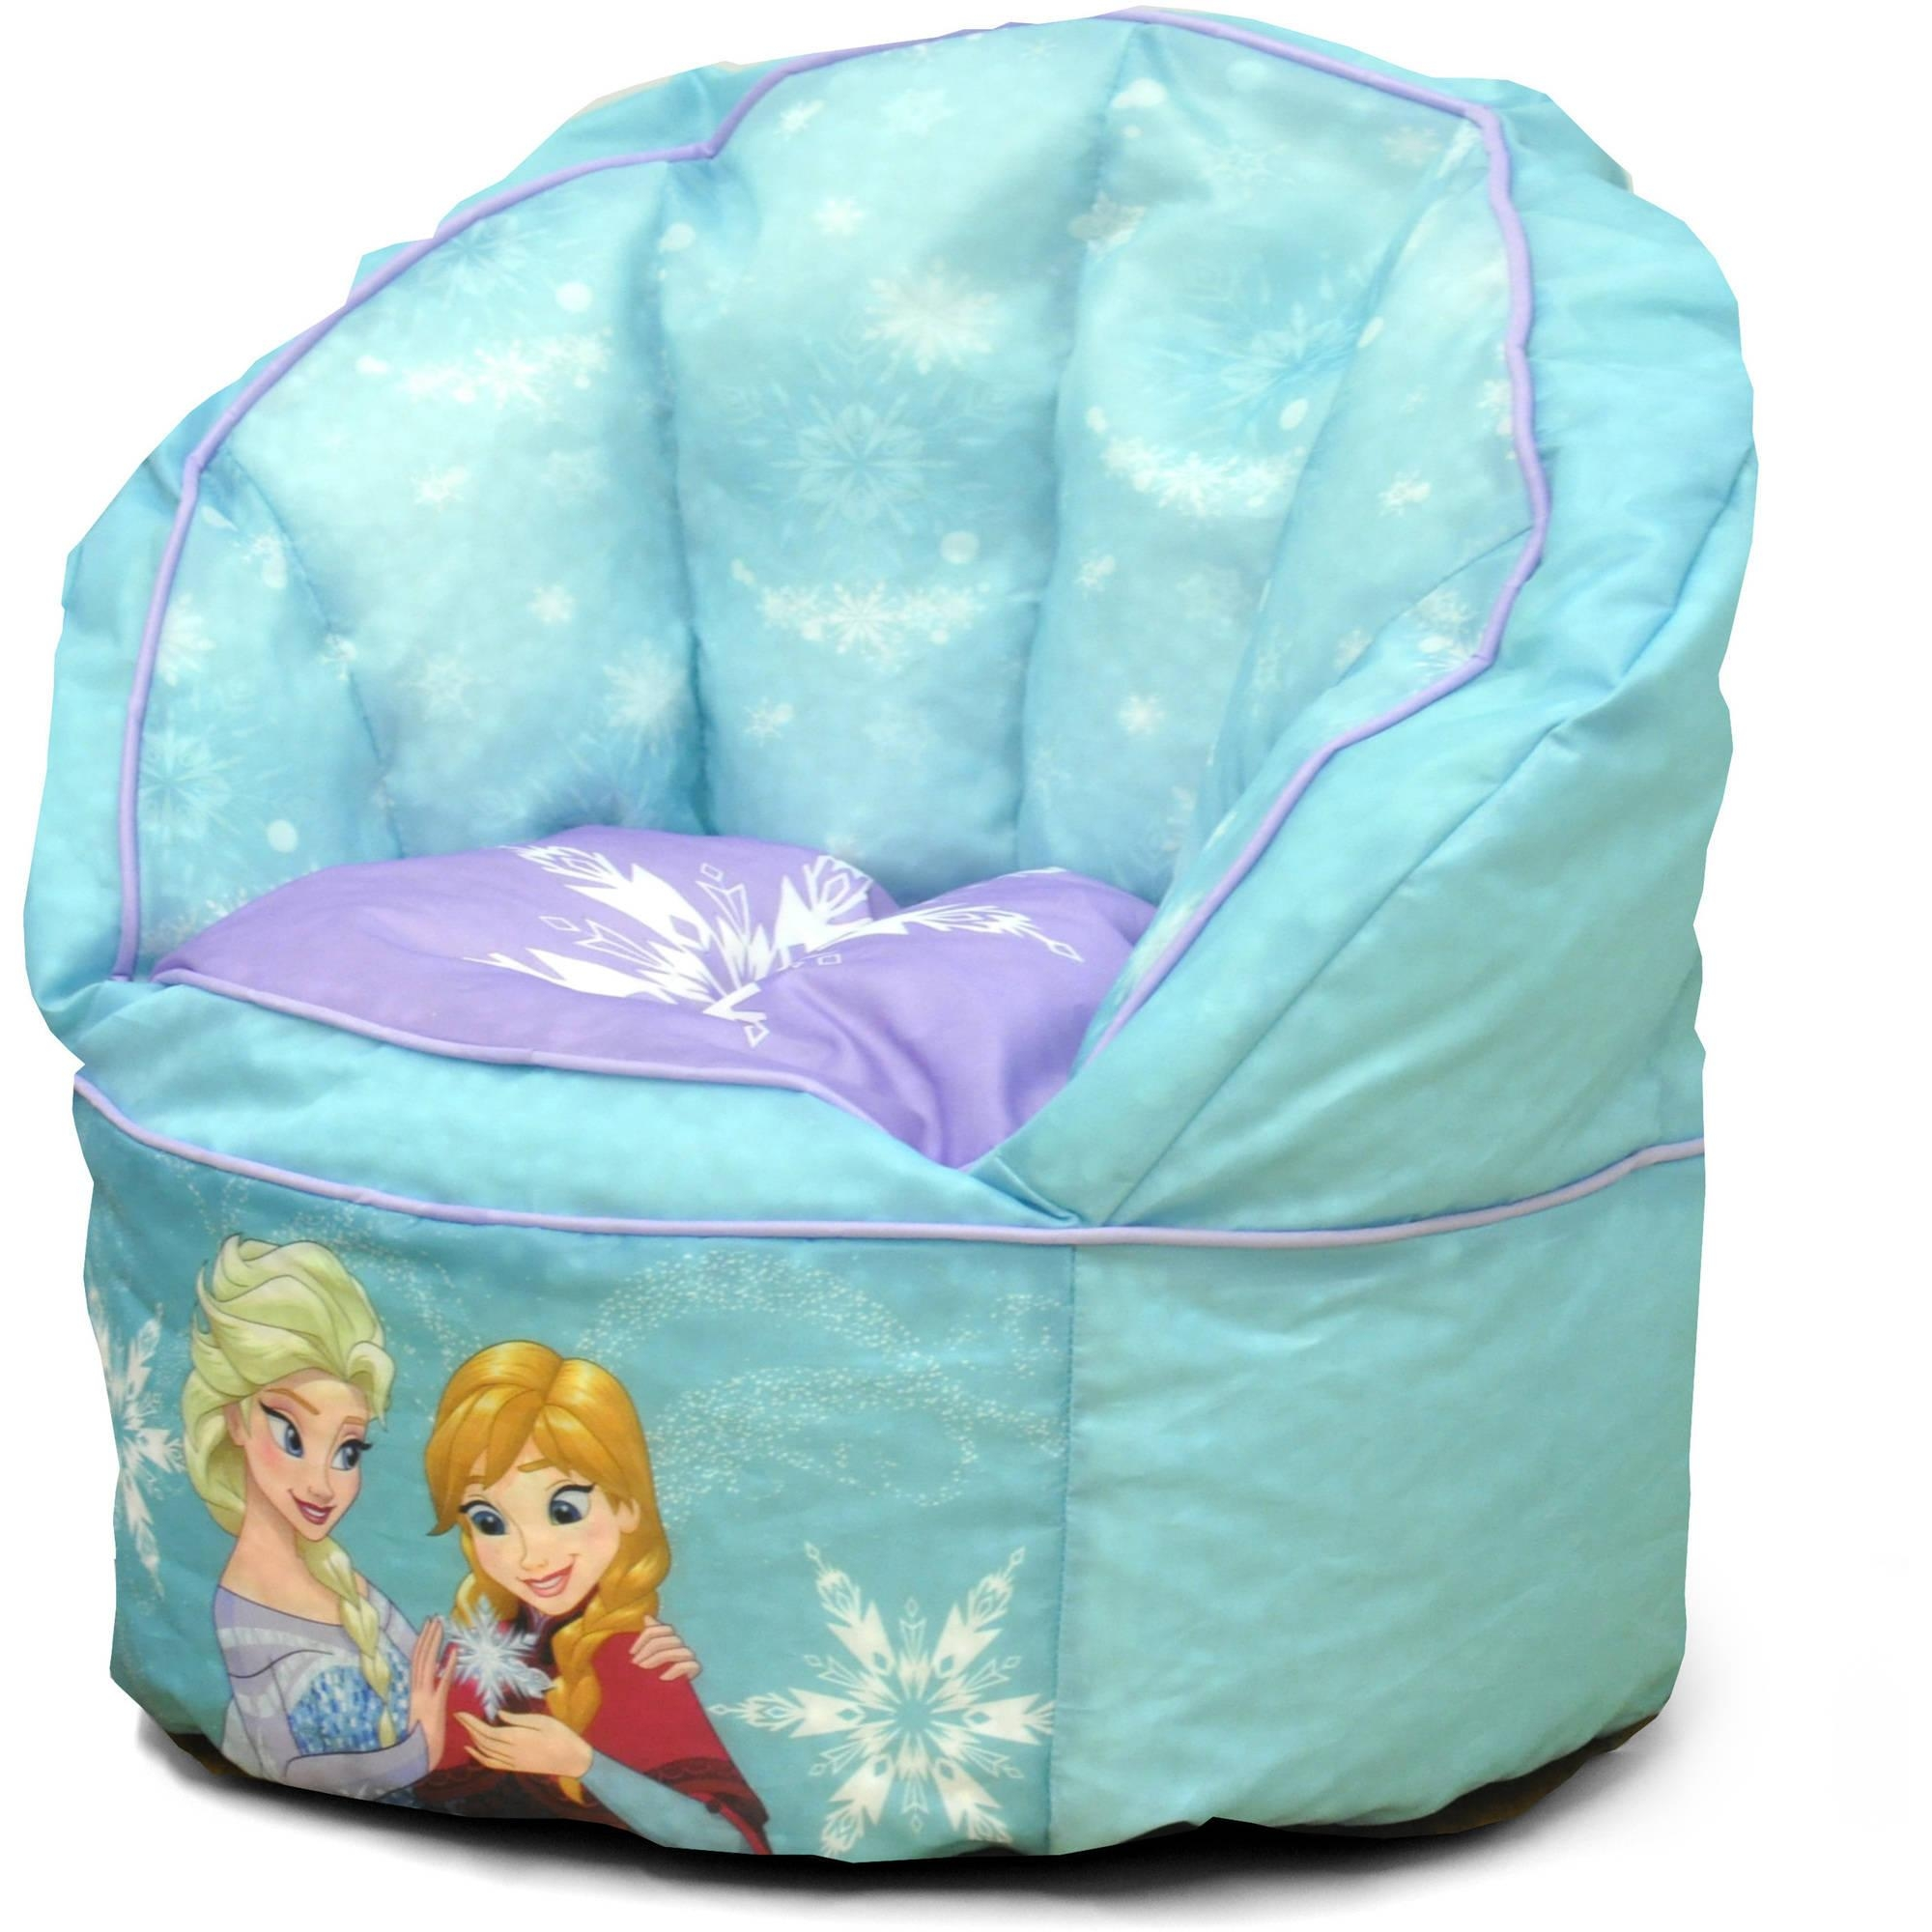 Disney Frozen Sofa Bean Bag Chair With Piping – Walmart With Disney Sofa Chairs (Image 3 of 20)